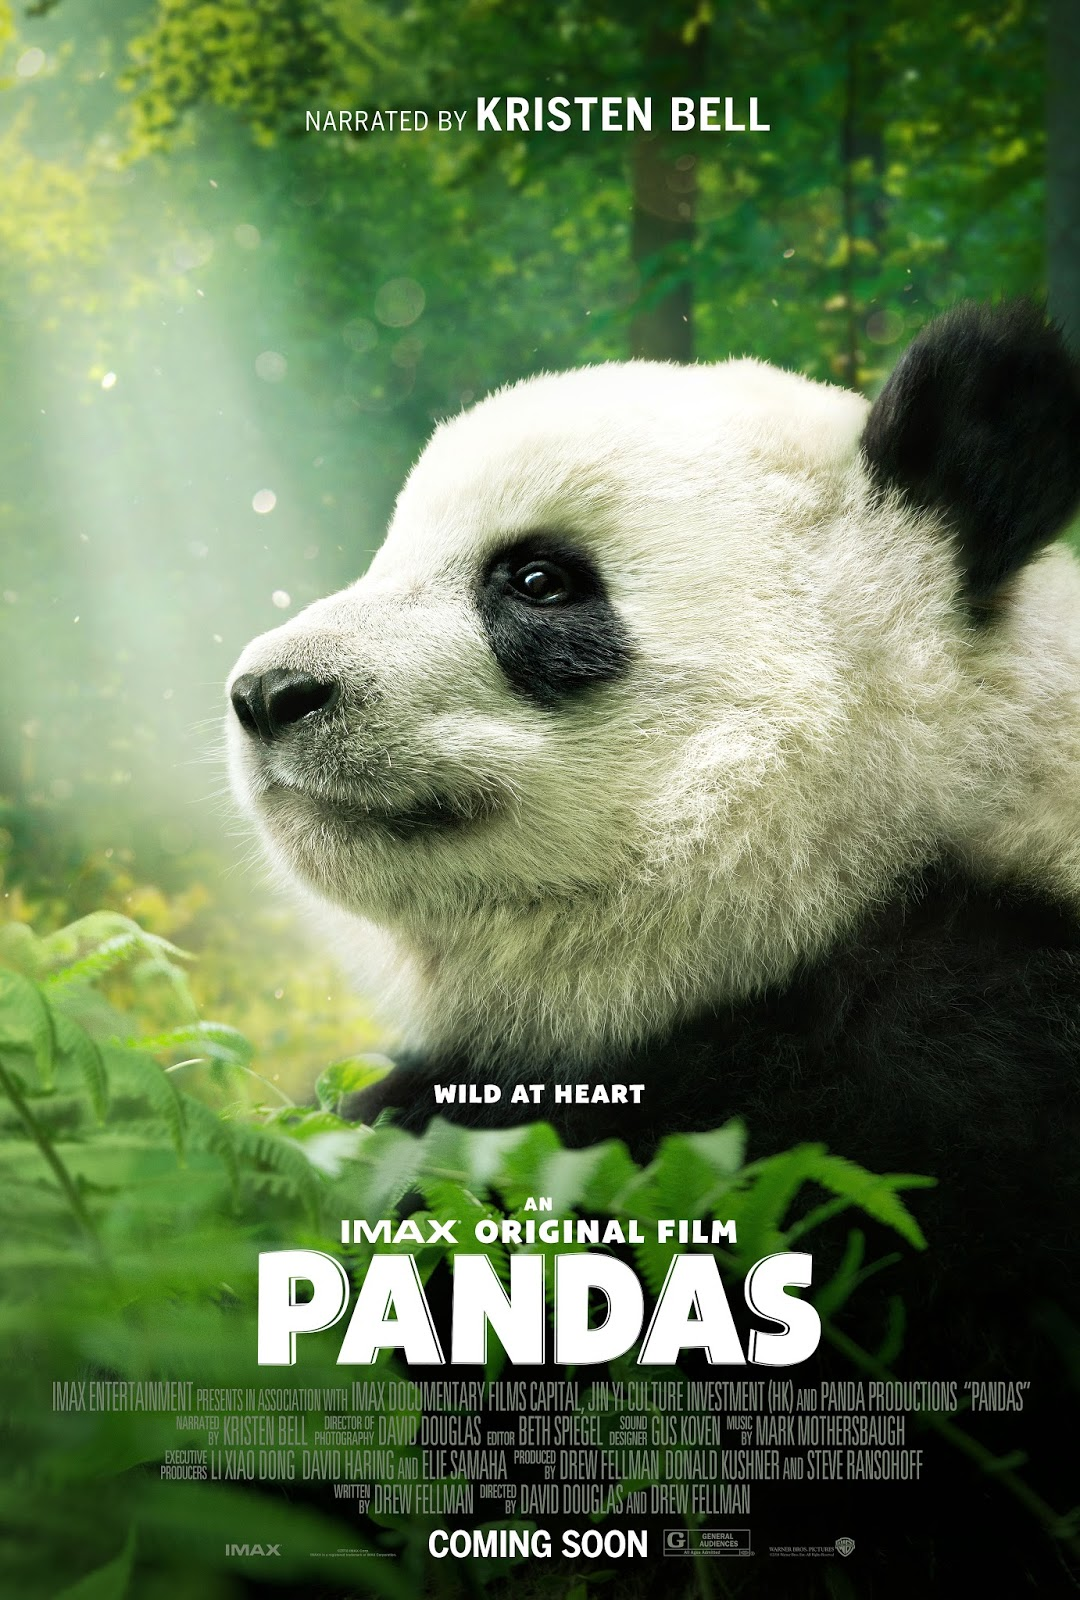 Chiil mama imax documentary pandas narrated by kristen bell begins imax corporation nyseimax and warner bros pictures announced that kristen bell frozen tvs the good place will narrate the latest imax documentary fandeluxe